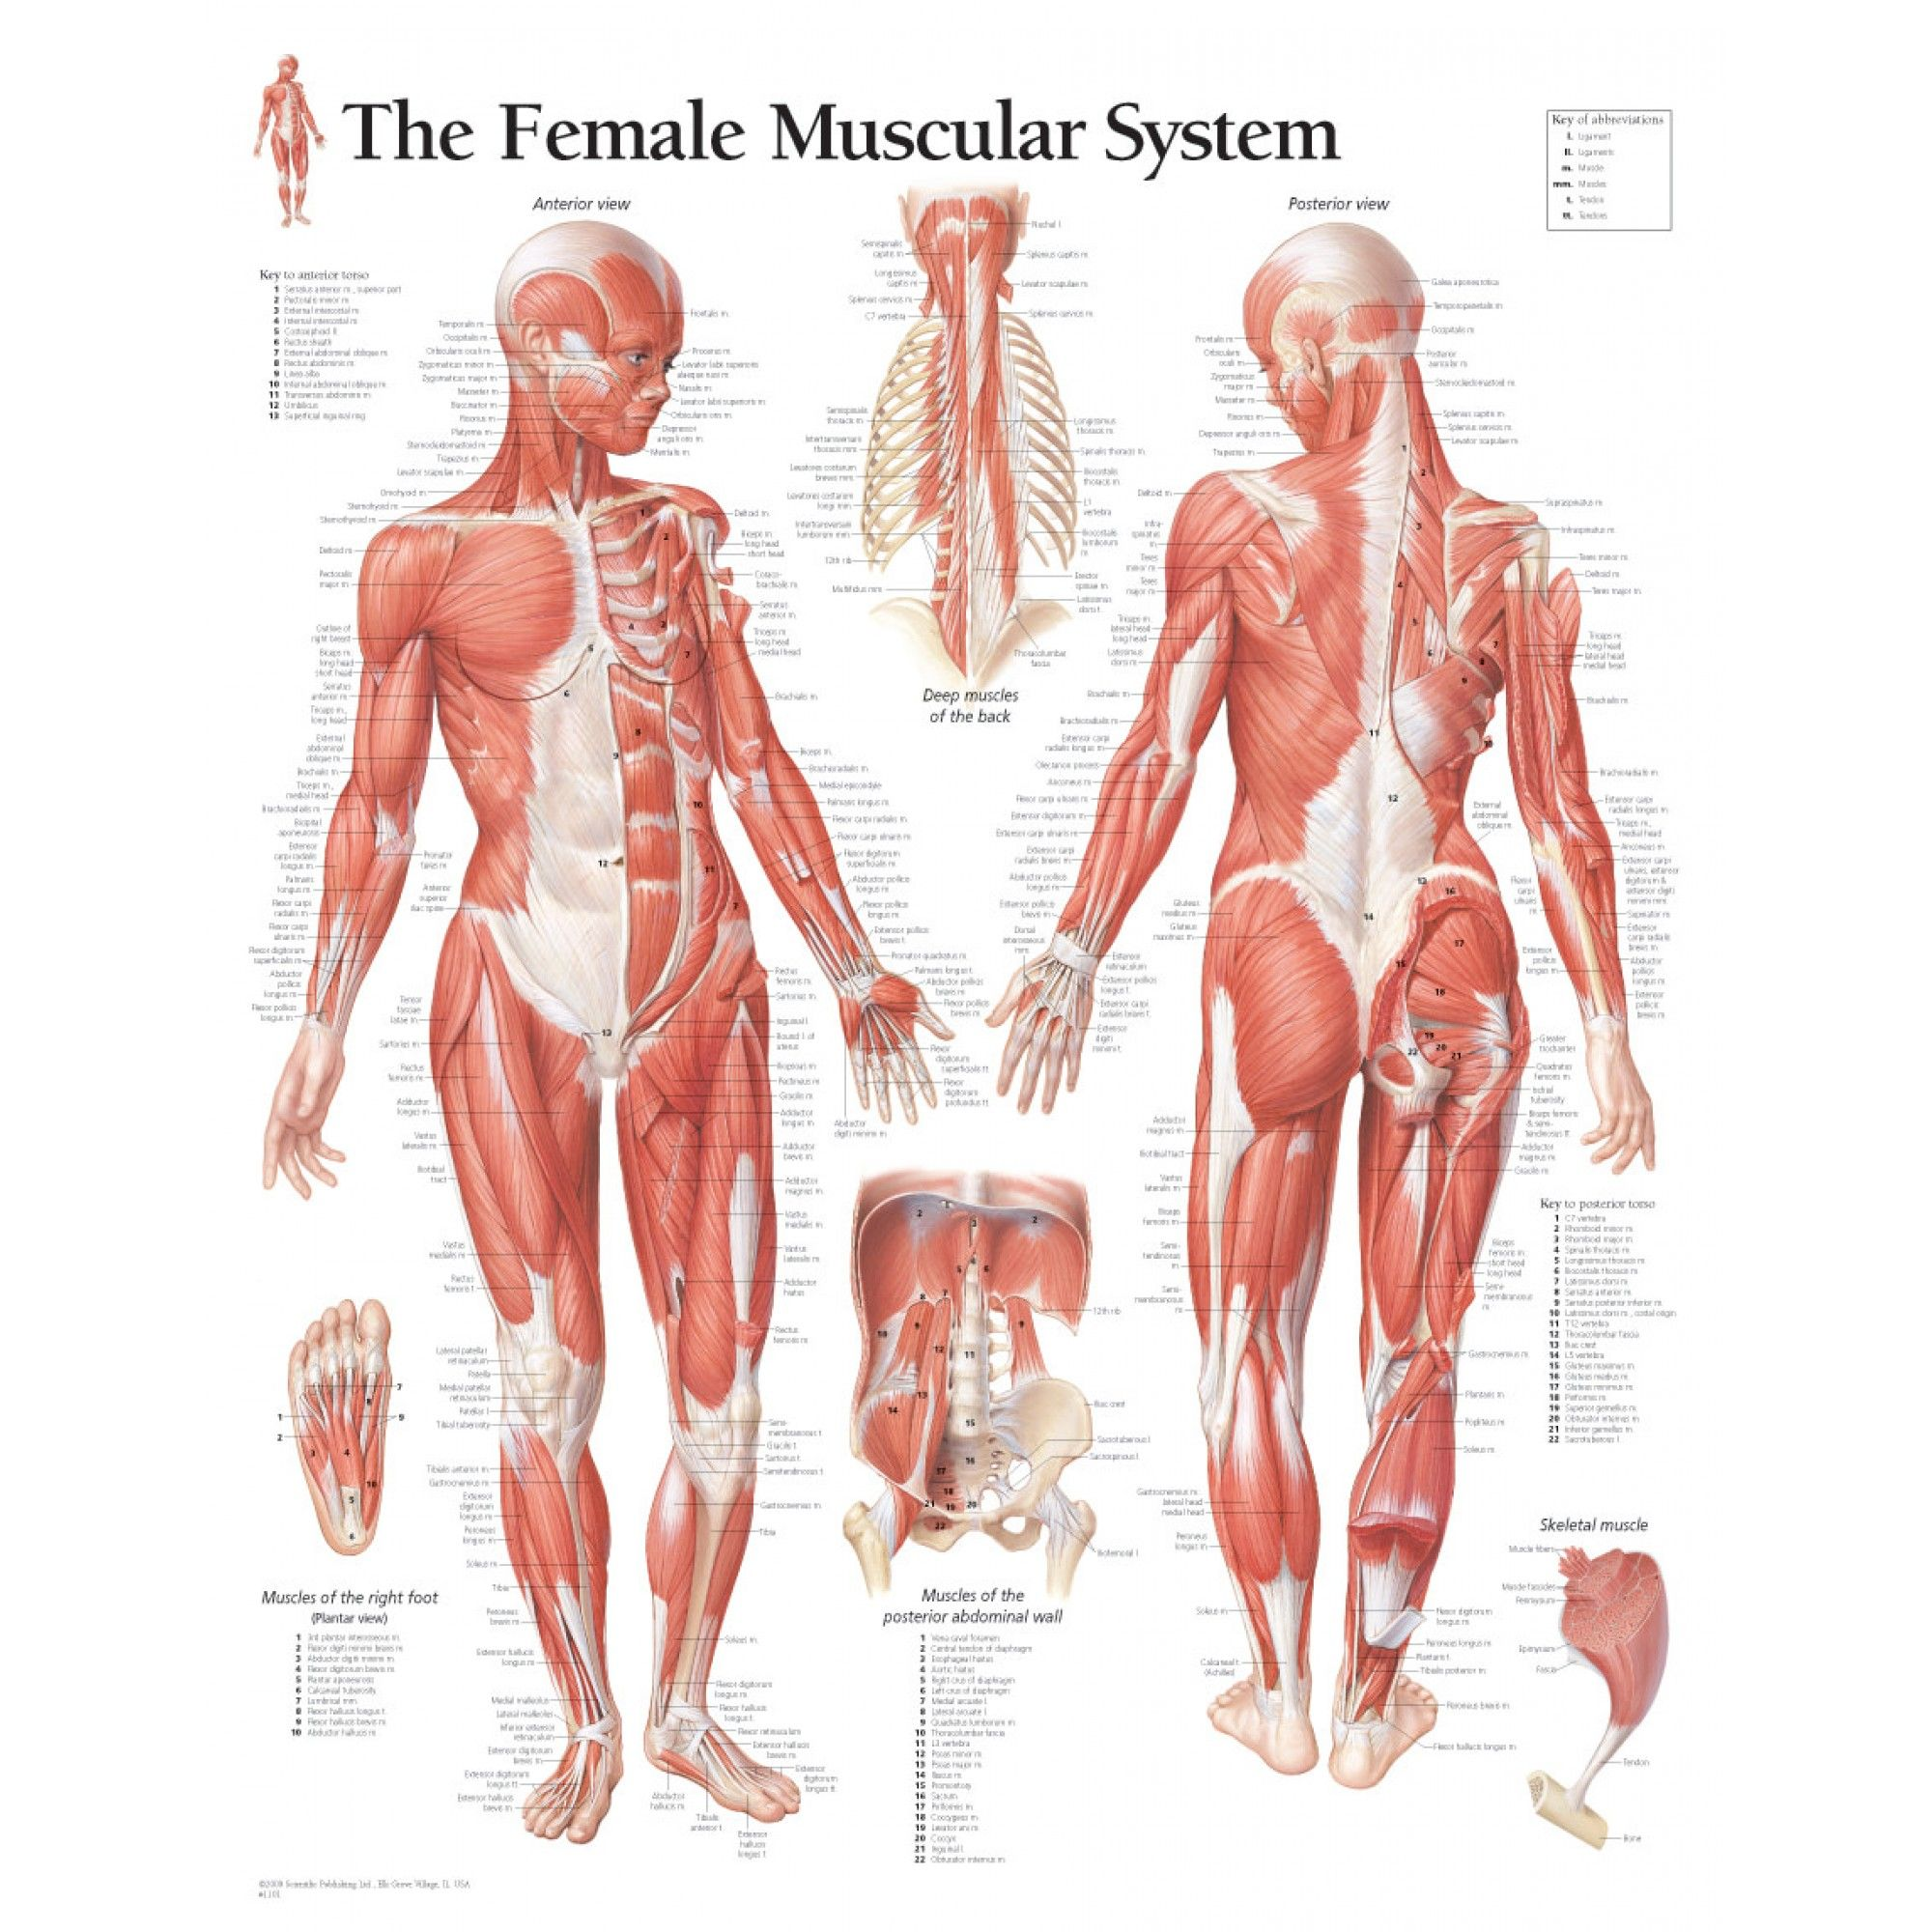 muscular system anatomical chart hd - Google Search | 1 | Pinterest ...